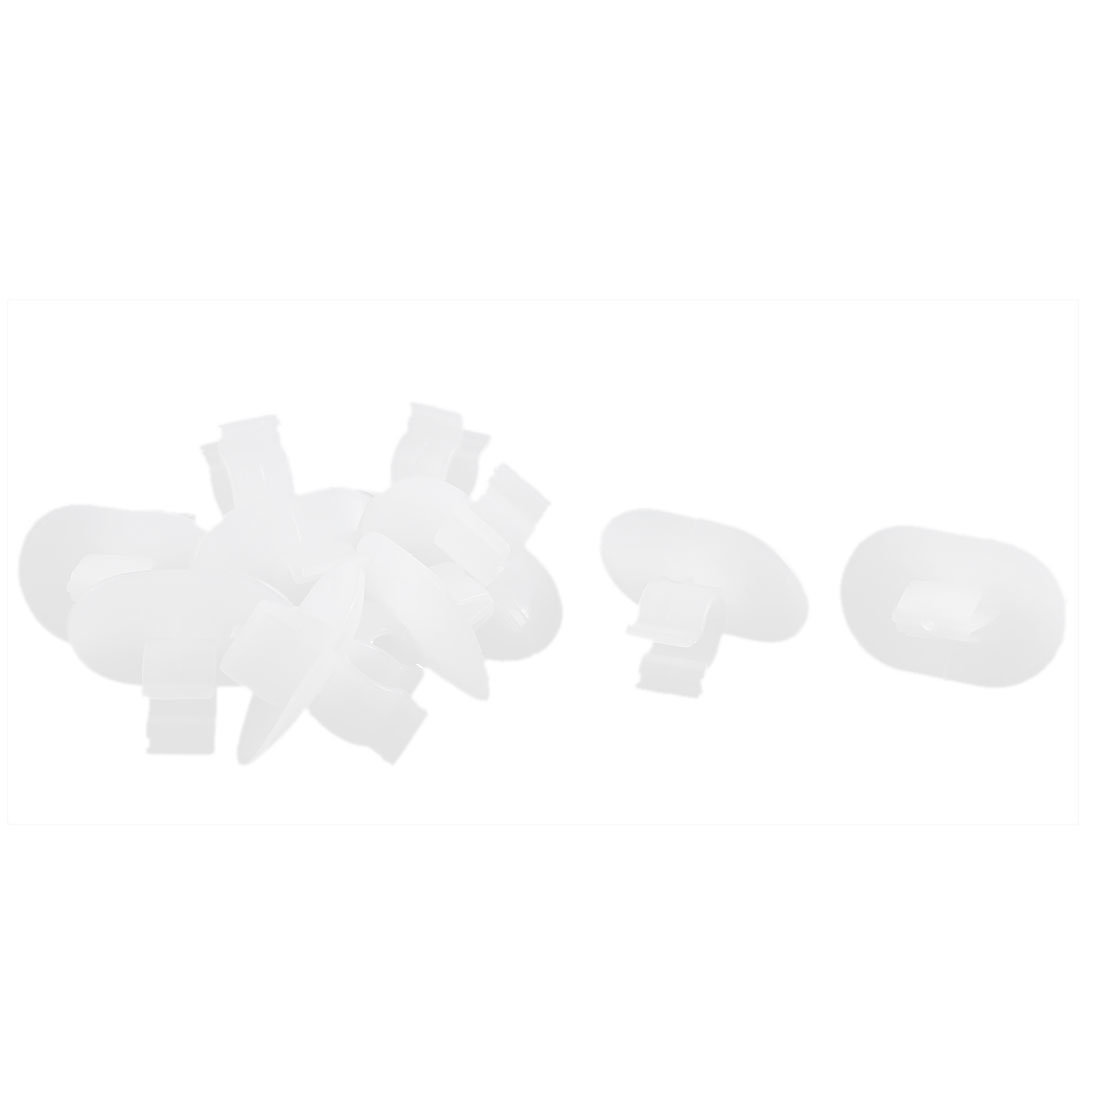 10 Pcs White Plastic Hood Support Rod Clamp Fastener Clip for Buick